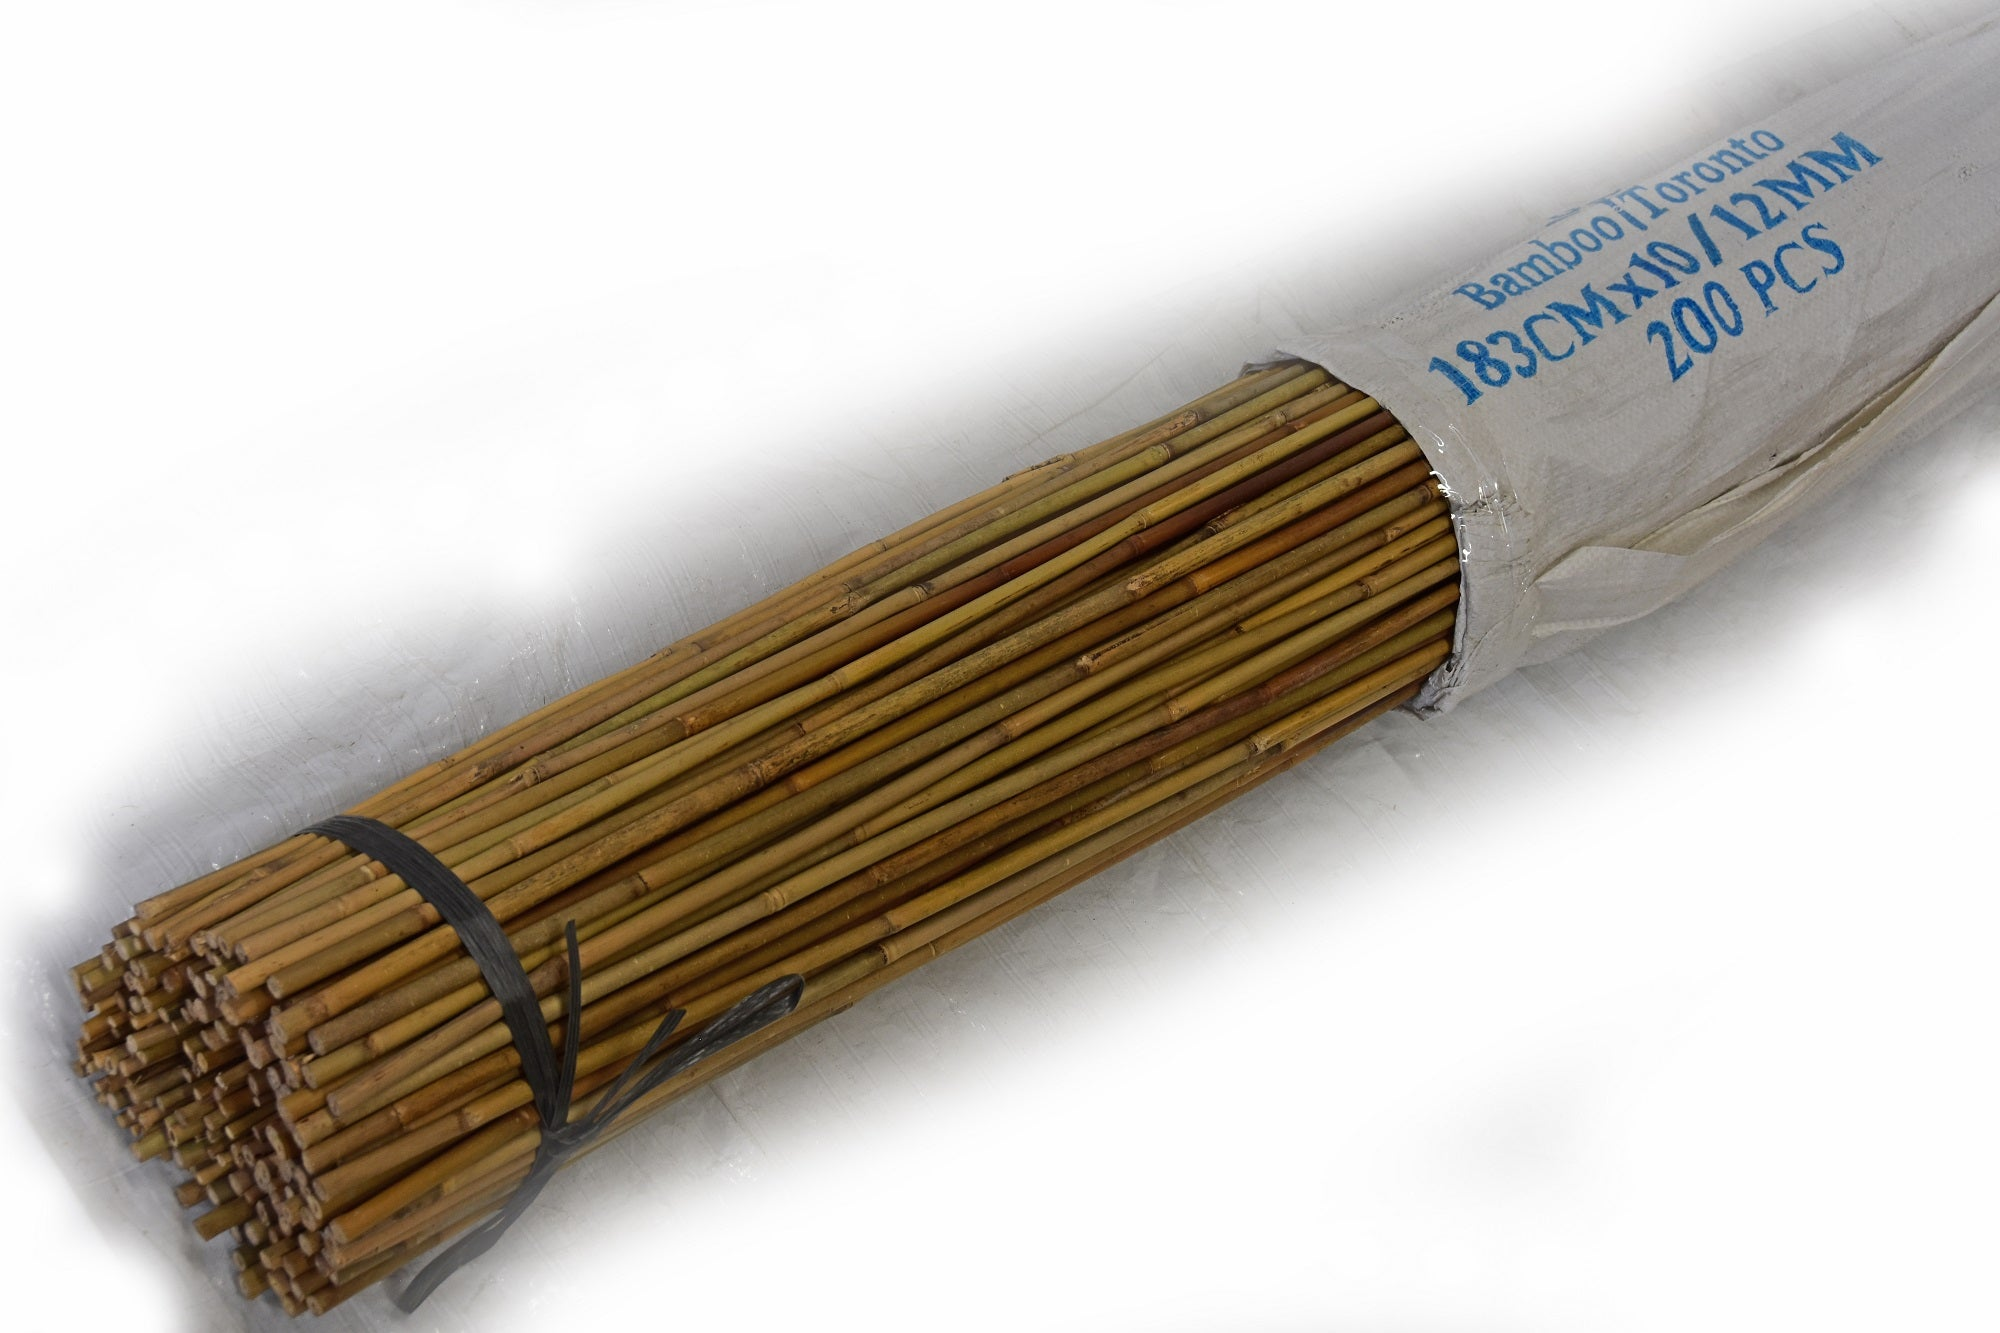 Tonkin Bamboo Pole 10-12mm x 5' Bundle of 250 - Bamboo Toronto Store